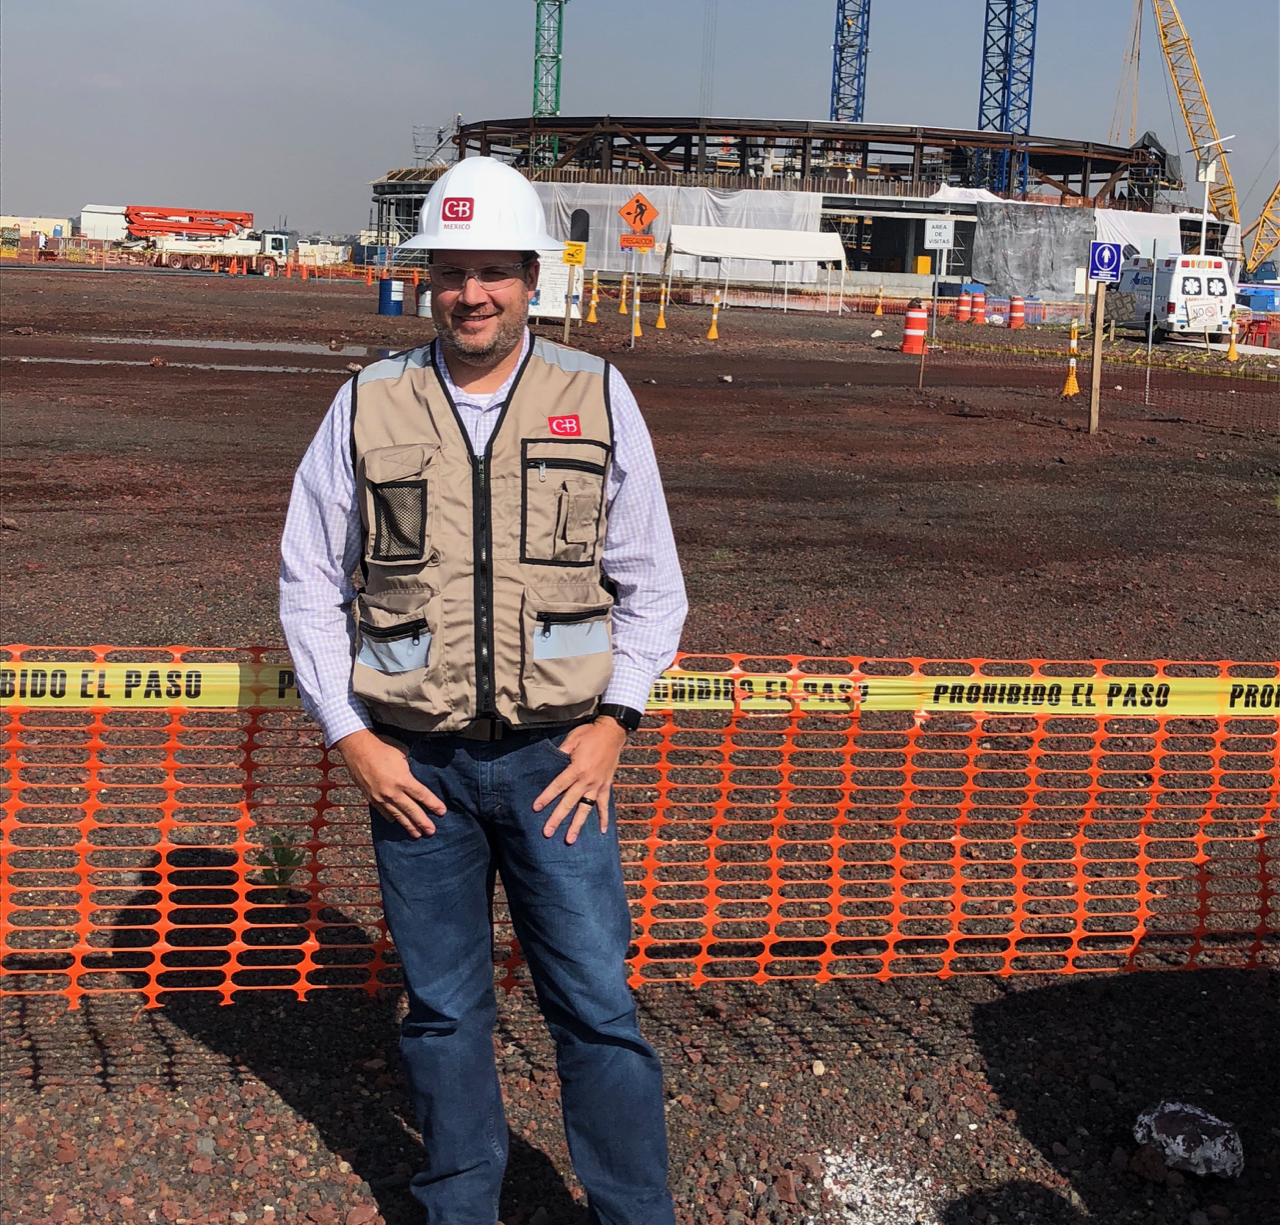 Mike Zoia onsite in Mexico City